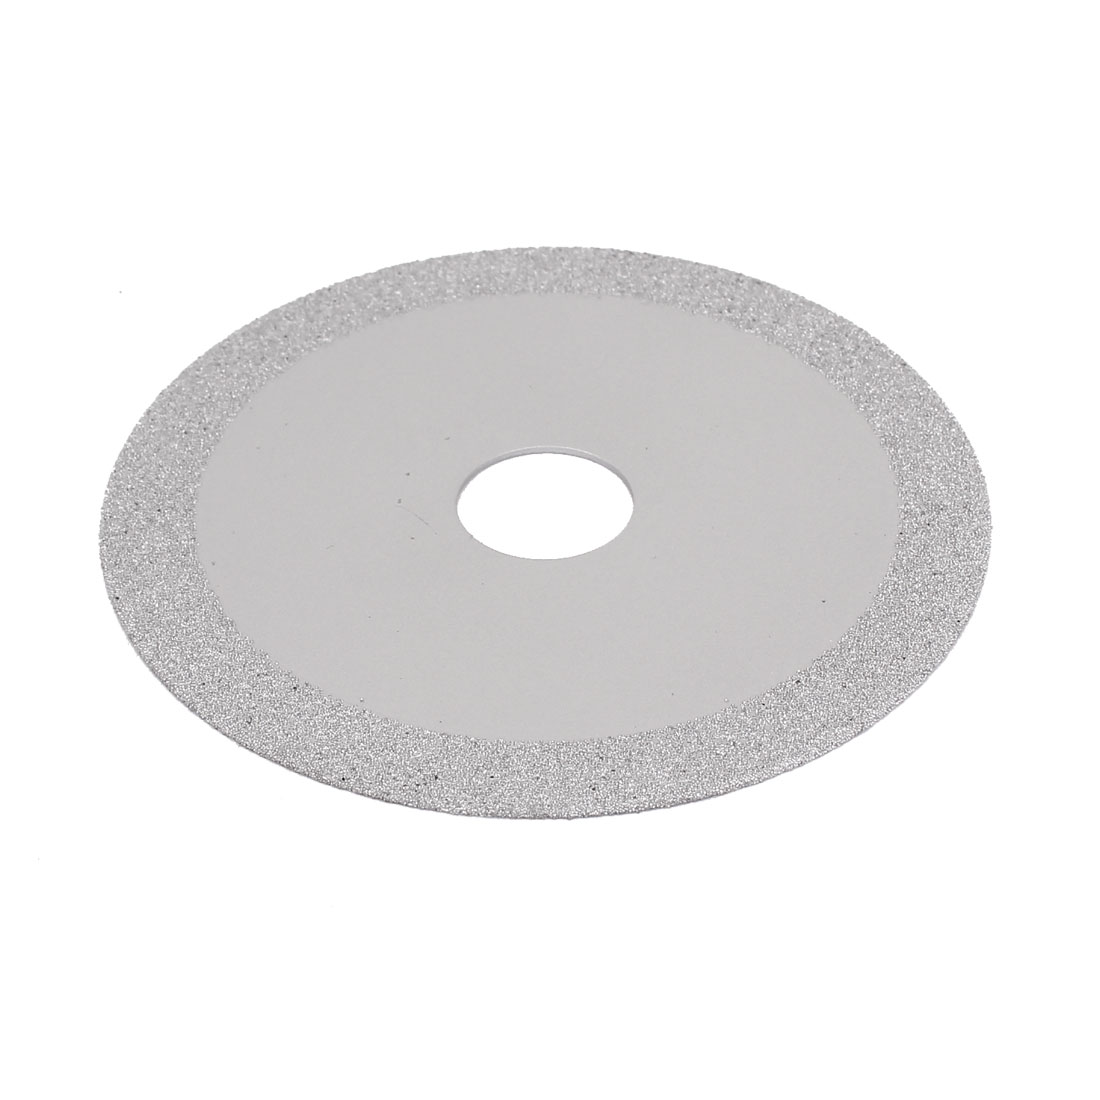 Marble Granite 100mm Outer Dia 20mm Bore Diamond Cut Off Disc Saw Cutter Wheel